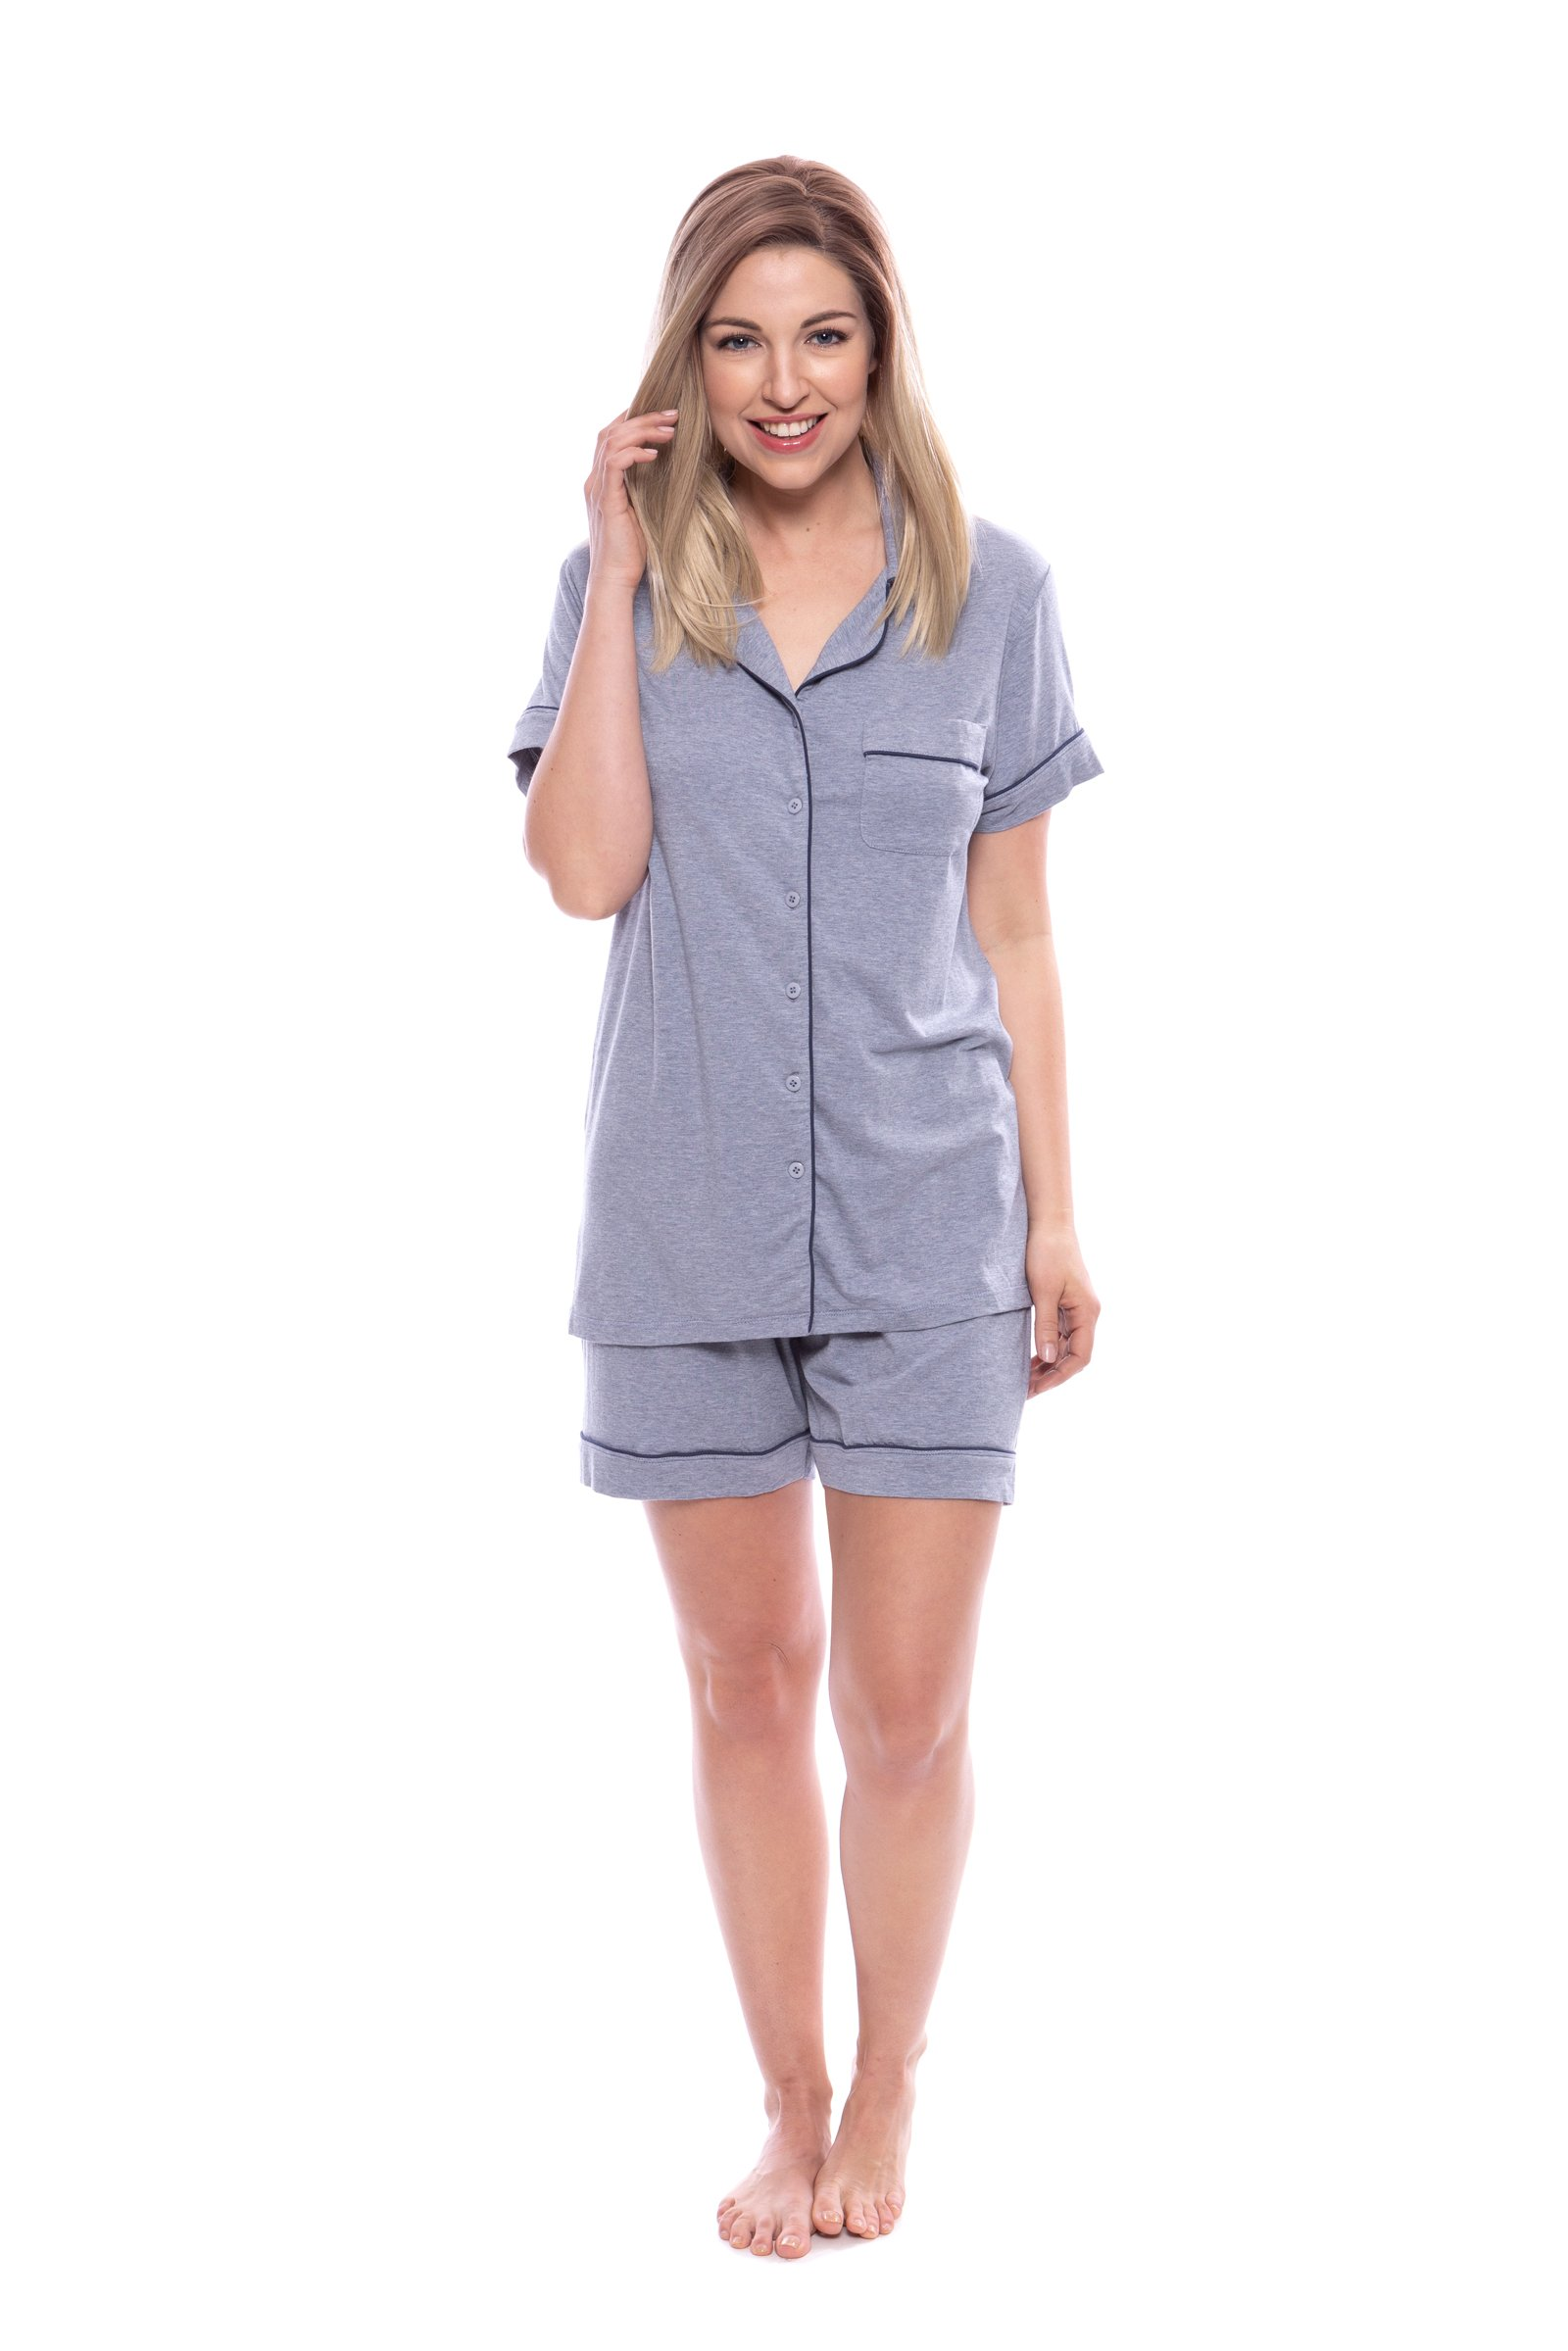 Texere Women's Bamboo Shorts Pajama Set (Heather Atlantic, Medium) Great Gift for Mother Daughter-in-Law Grandma TX-WB000-008-21U2-R-M